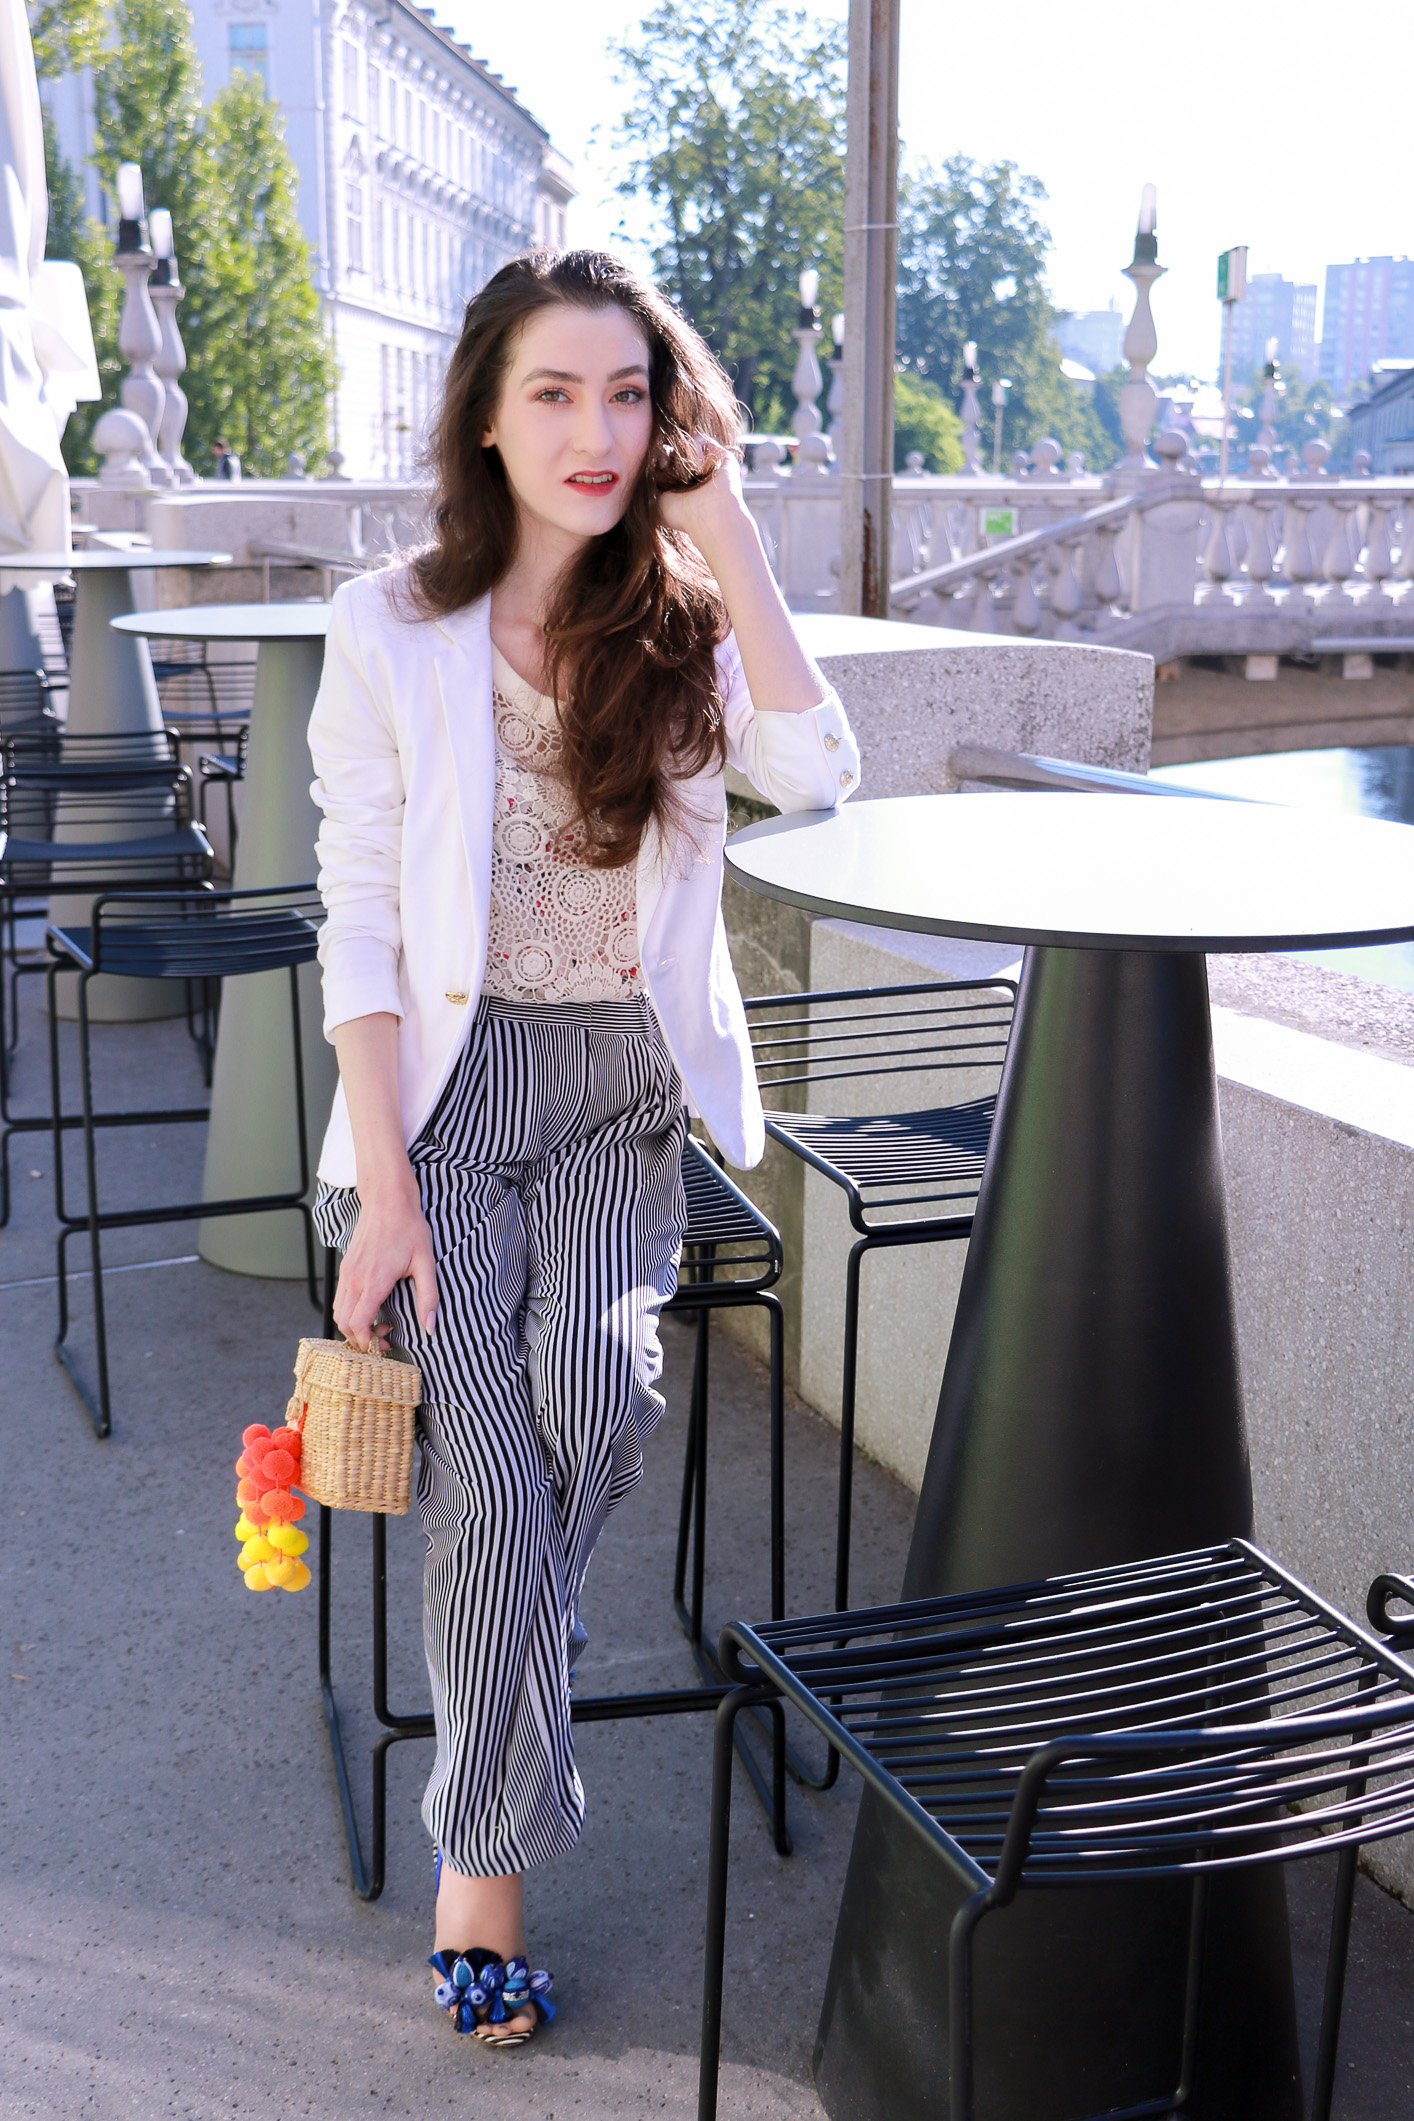 Fashion blogger Veronika Lipar of Brunette From Wall Street sharing how to mix and match different styles in one outfit this summer